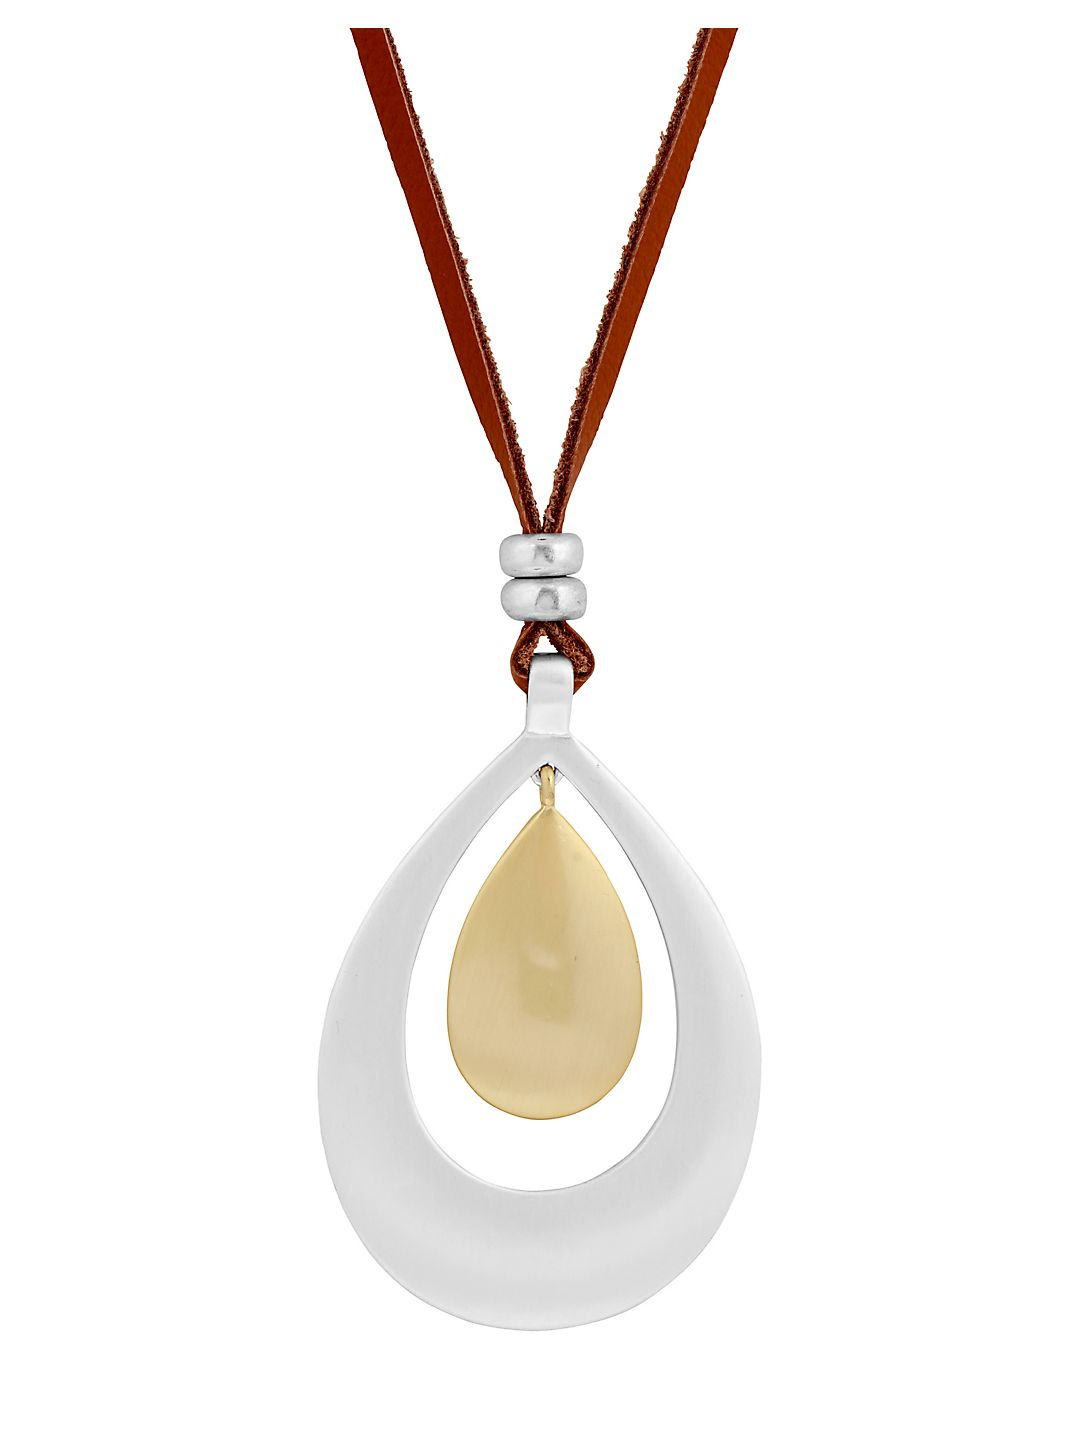 Poets Garden Teardrop Pendant Necklace